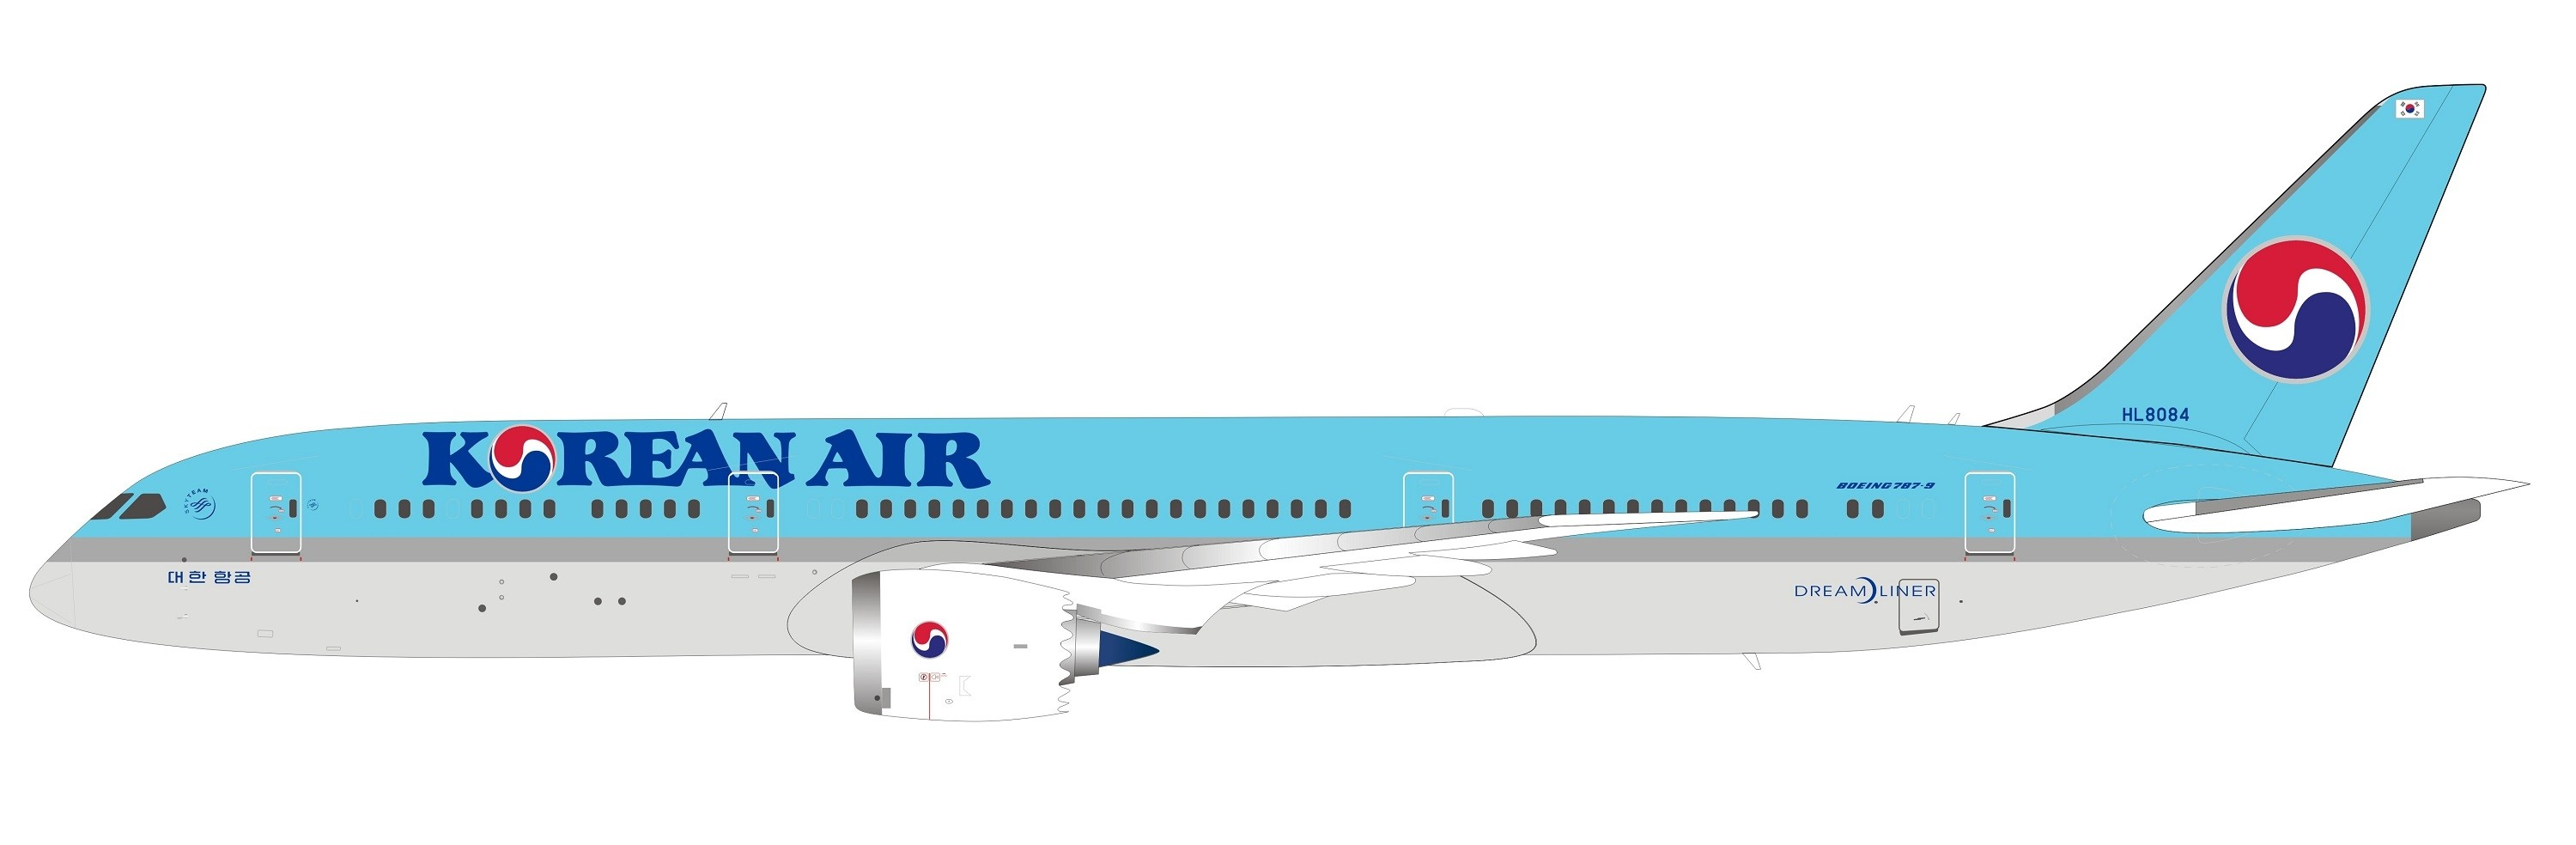 Korean Air Boeing 787-9 Dreamliner HL8084 B-Models InFlight/B-models